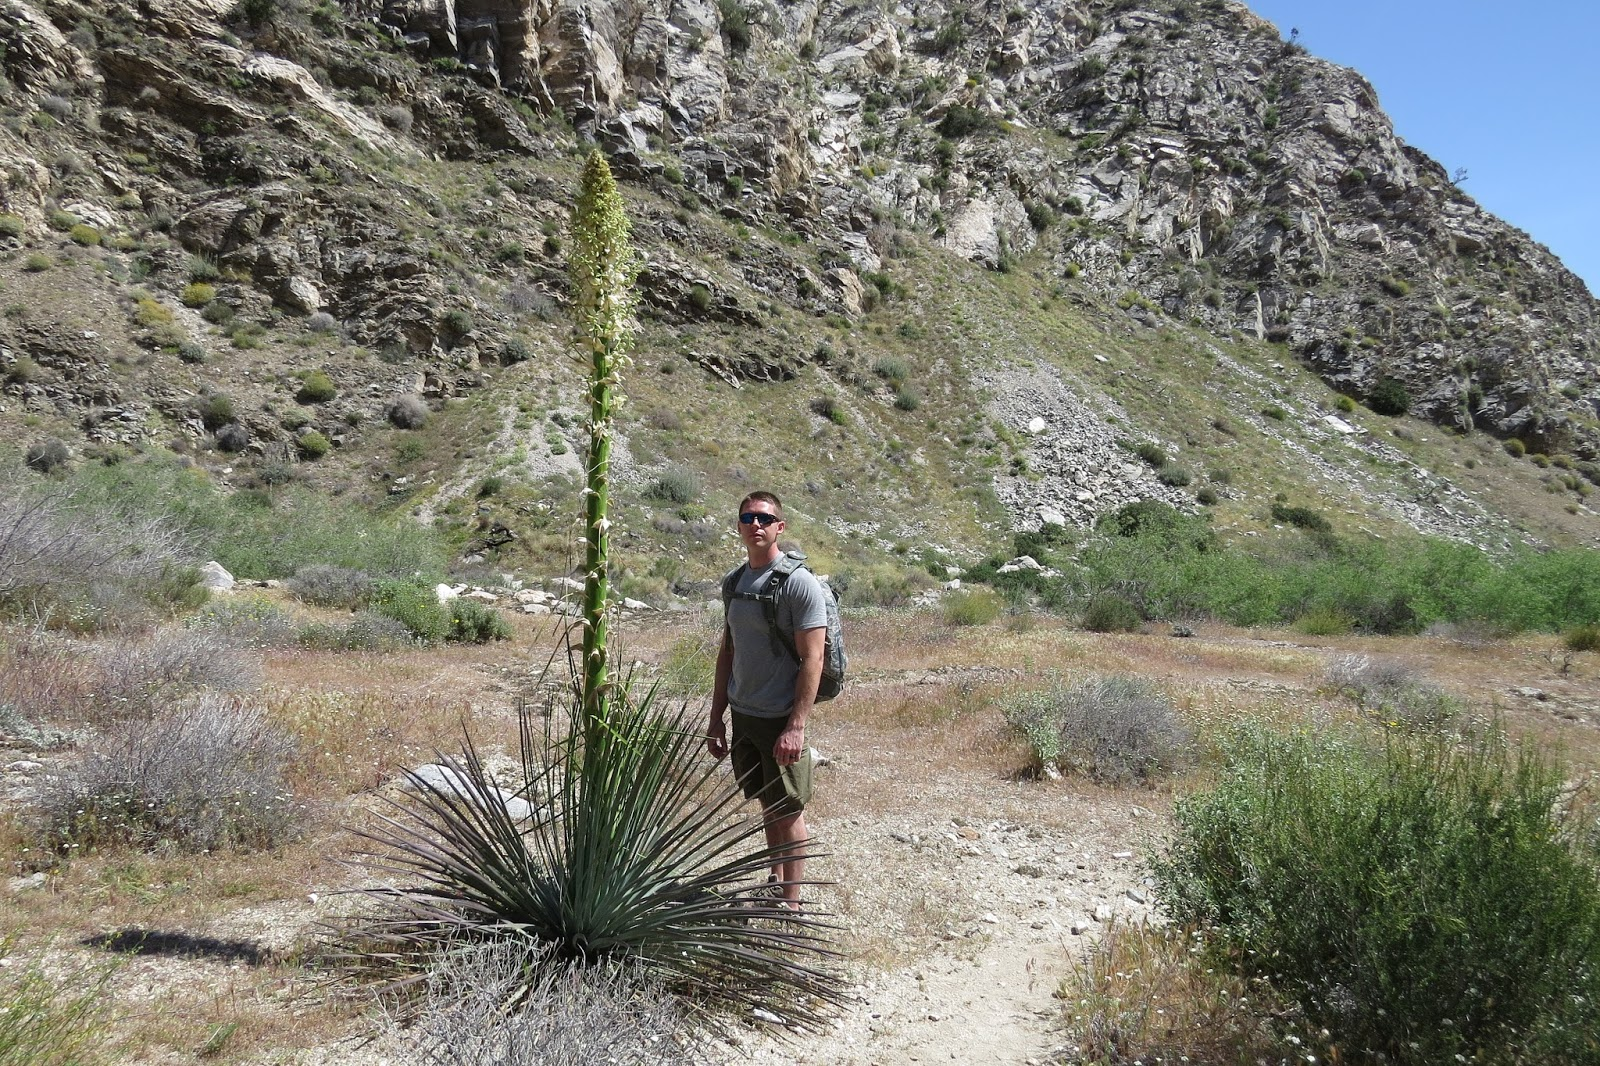 Palm Desert California, Whitewater Canyon Painted Trail Hike at Whitewater Preserve, Aunie Sauce Travels